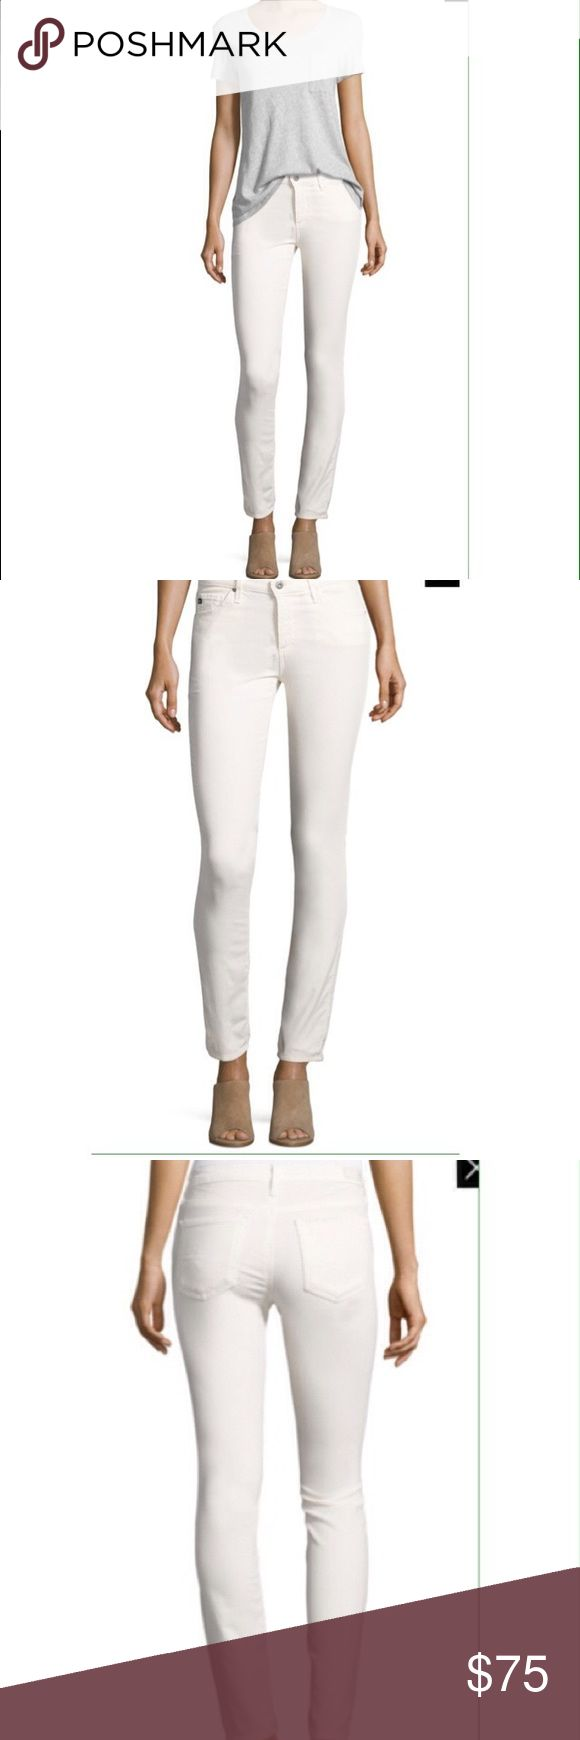 """AG The Prima Mid-rise cigarette jeans AG The Prima Mid-rise cigarette jeans. Inseam 30"""", 26R, color white. EUC Ag Adriano Goldschmied Jeans"""